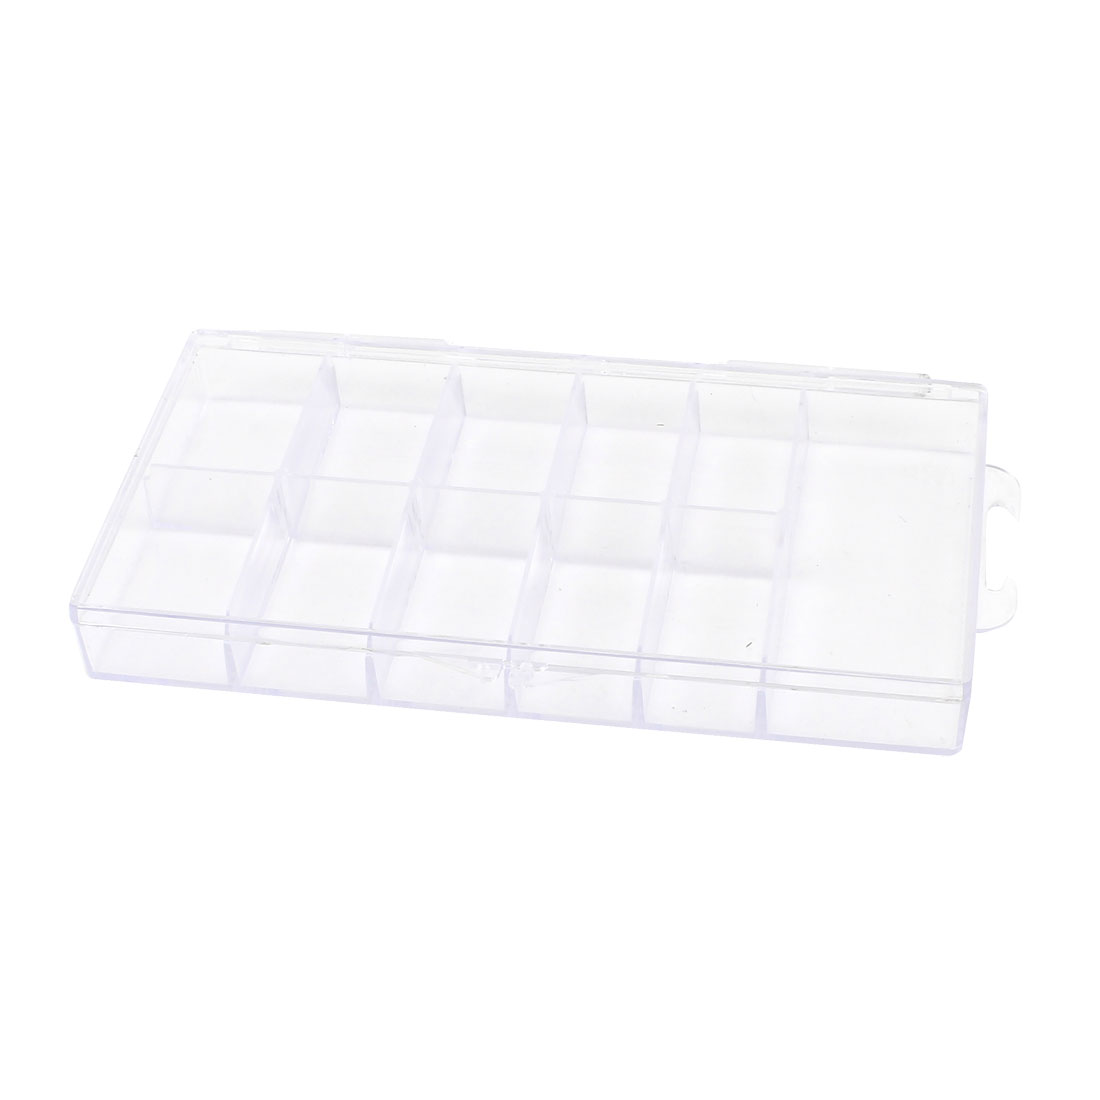 Clear White Plastic 11 Compartments Comestics Storage Box Case 14.7 x 7.7 x 1.8cm